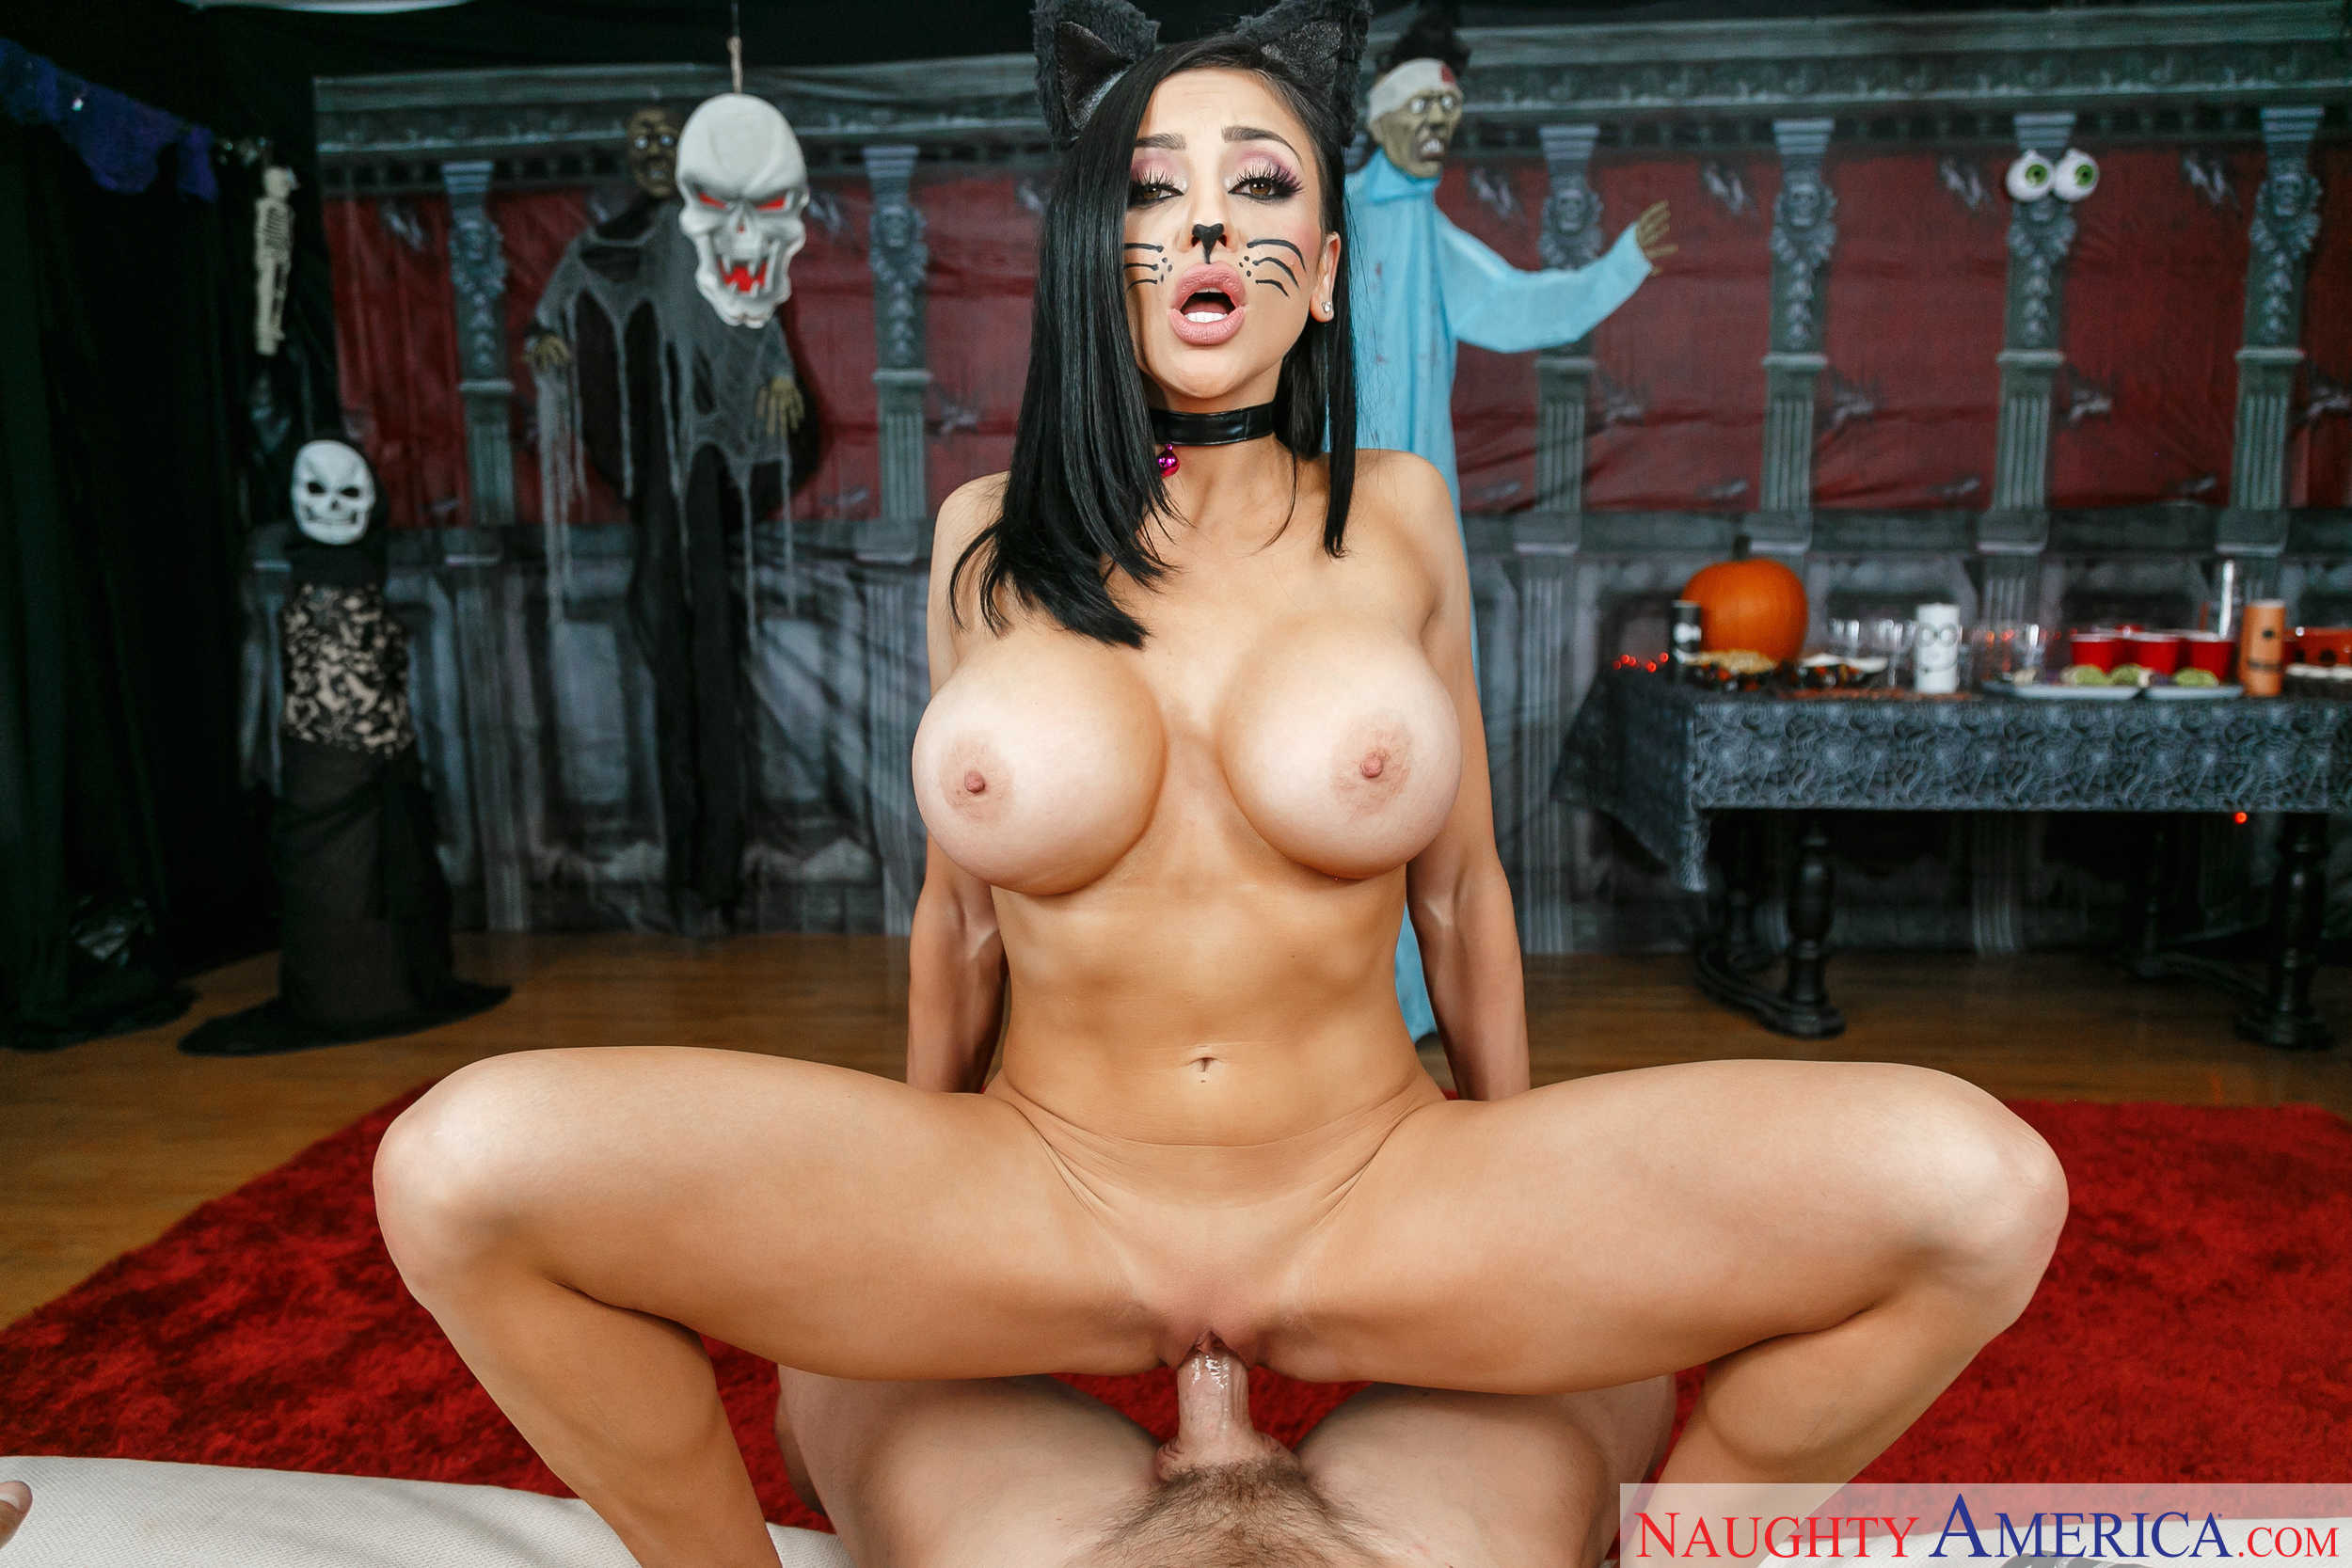 Audrey bitoni photo nue interesting